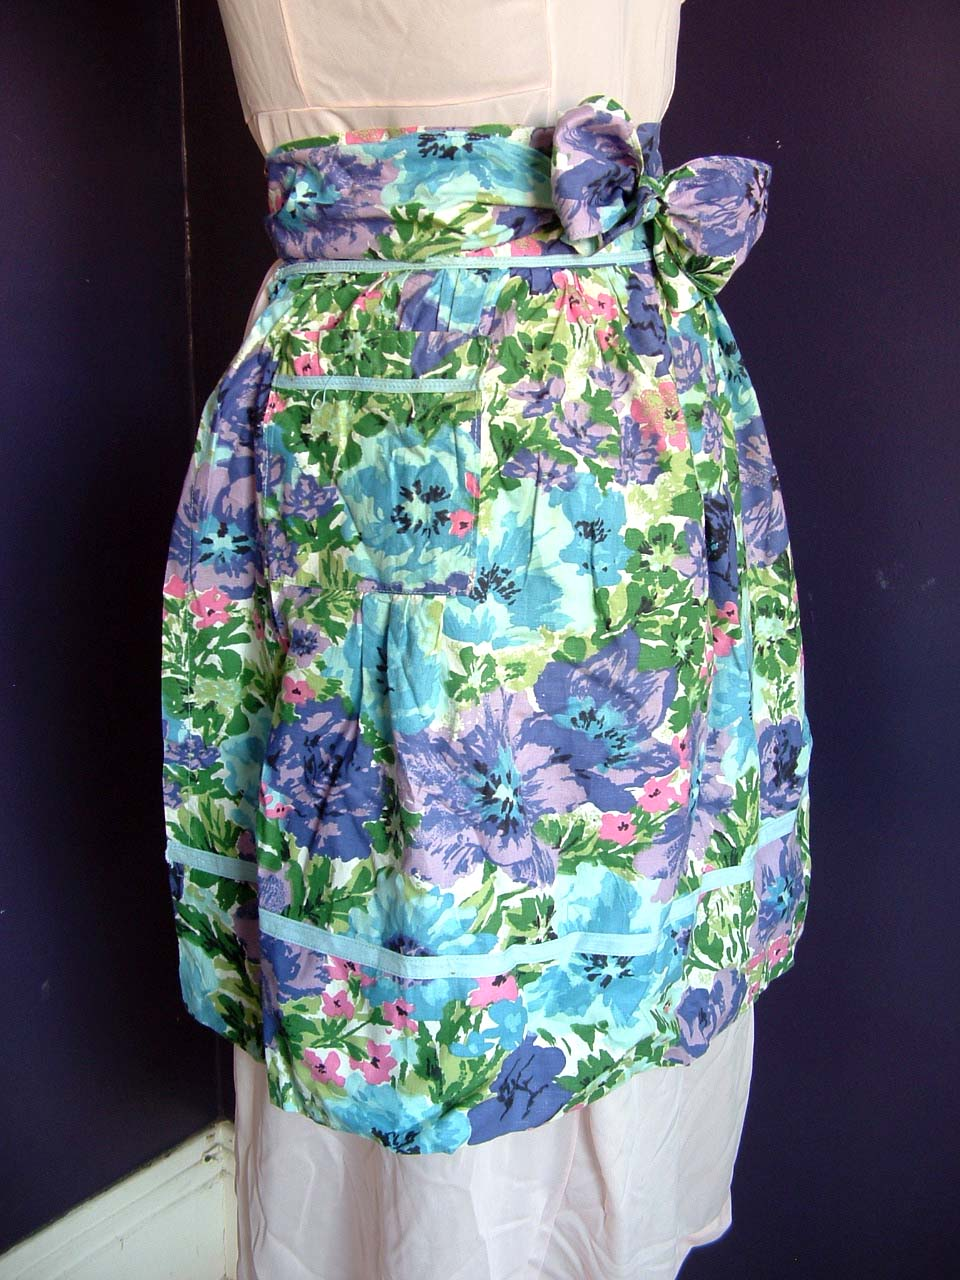 vintage floral cotton print apron cute apron from the 50s or 60s with